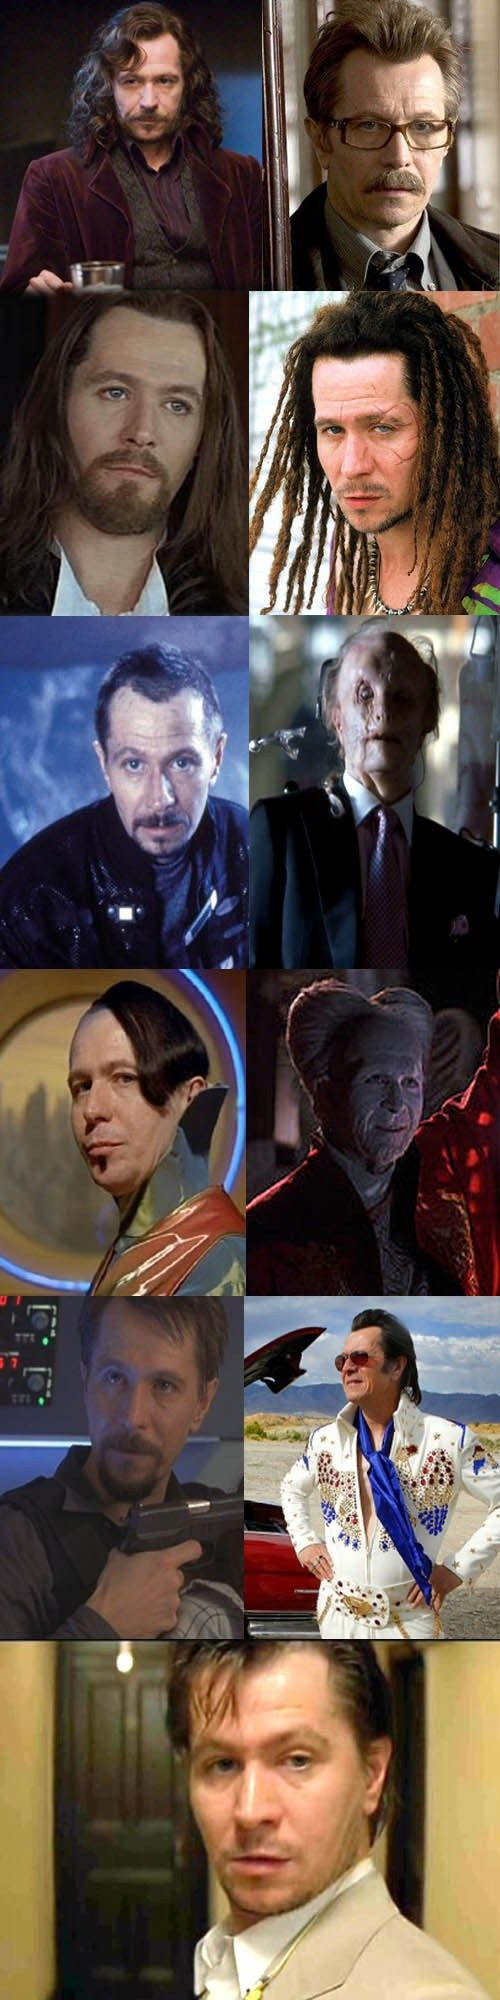 "Gary Oldman Doesn't Know the Meaning of ""Typecast"" // I loved him in the 5th Element - perfect bad guy/comic"